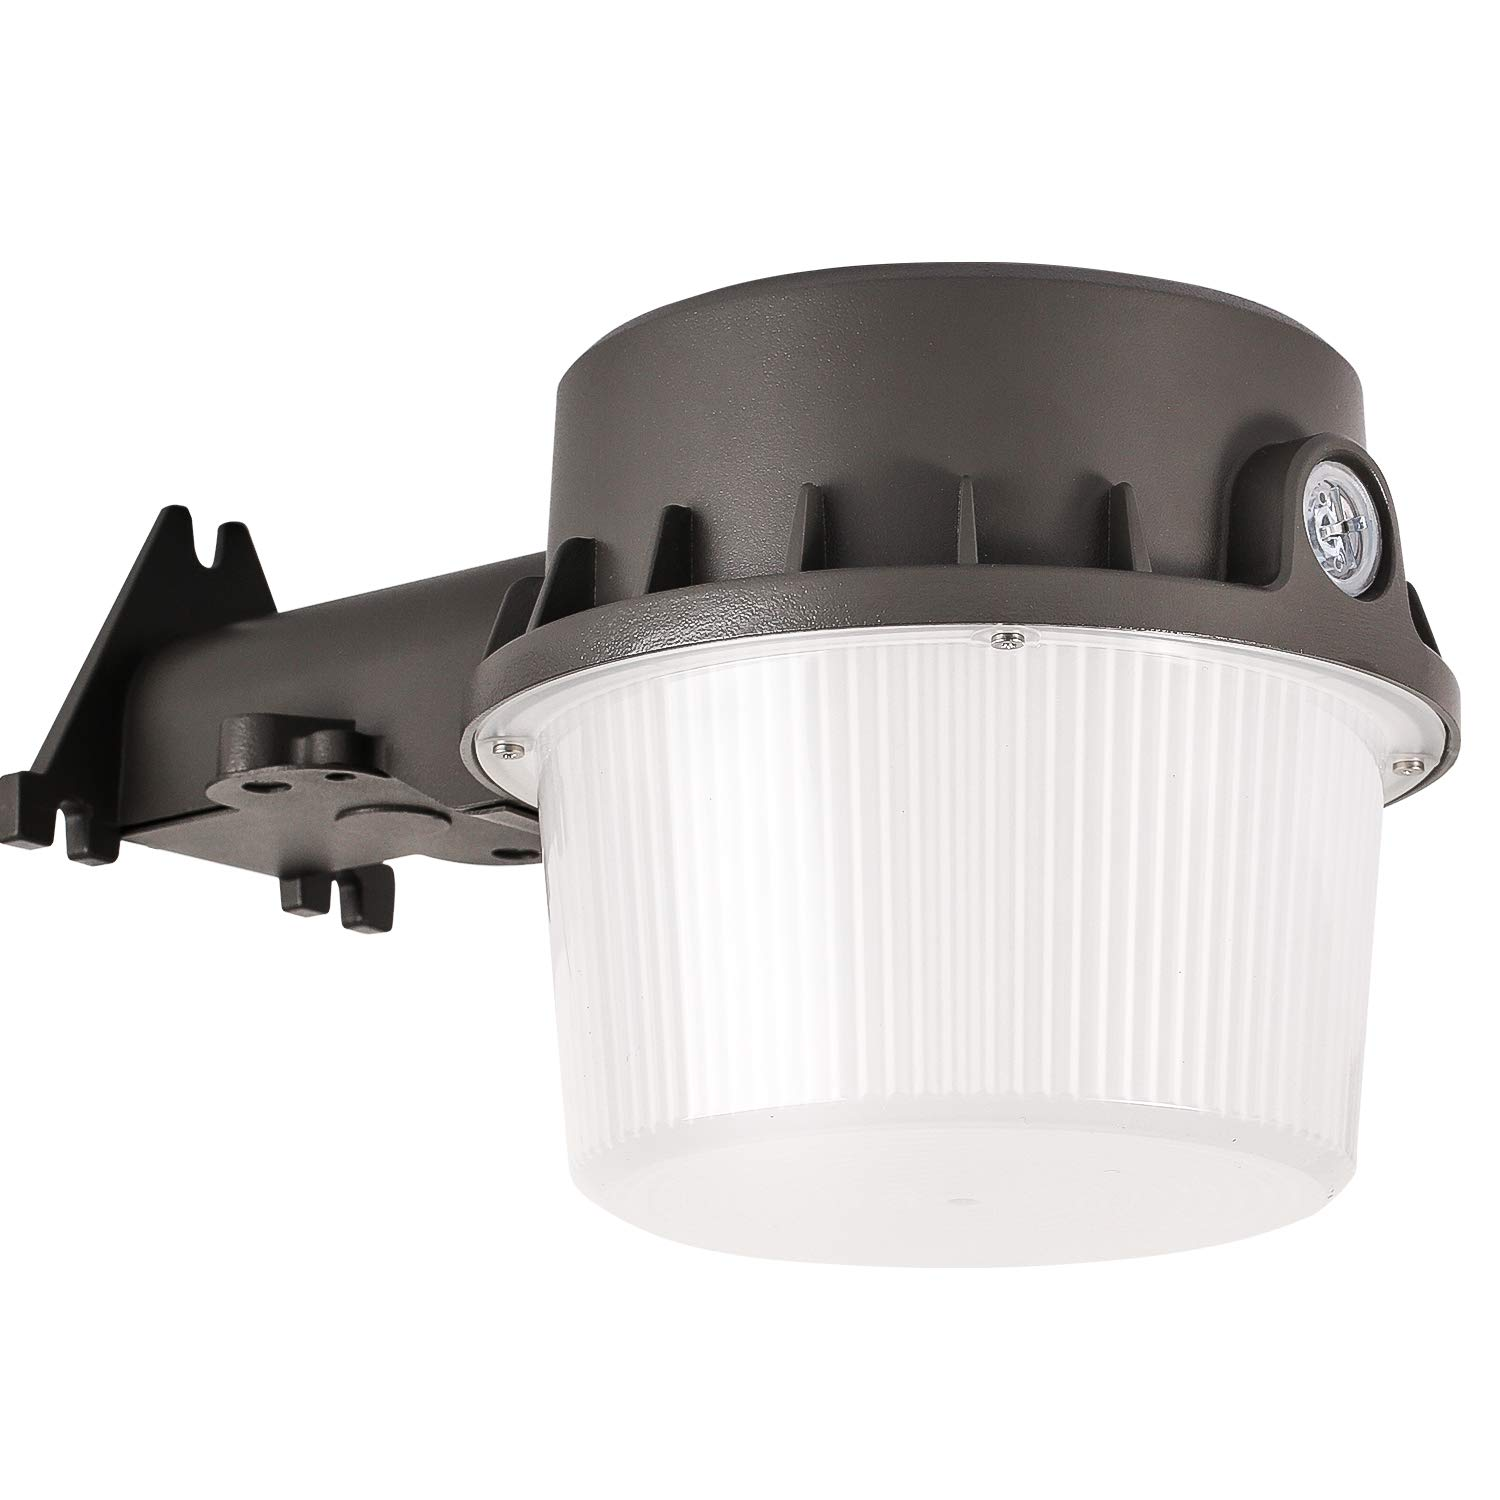 Amico Dusk-to-Dawn LED Outdoor Barn Lights (Photocell Included), 35W(260W Equiv.) 3700lum Daylight, 5000K Yard Light Waterproof, DLC & ETL-Listed, Led Floodlight for Steet Area Lighting